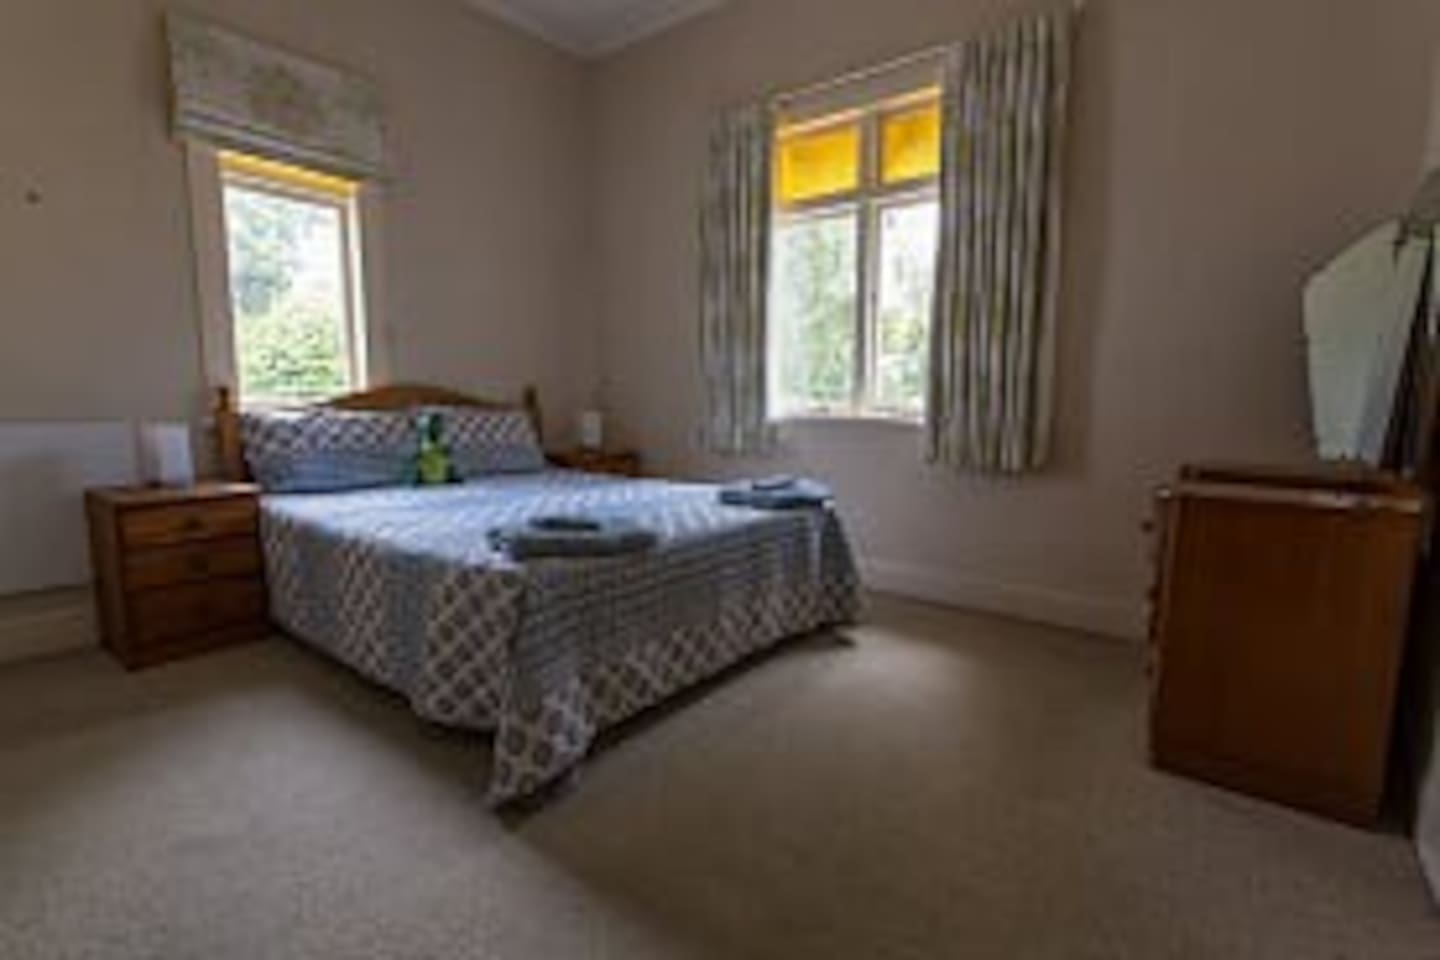 Nice large double bedroom with closet and bathroom adjacent